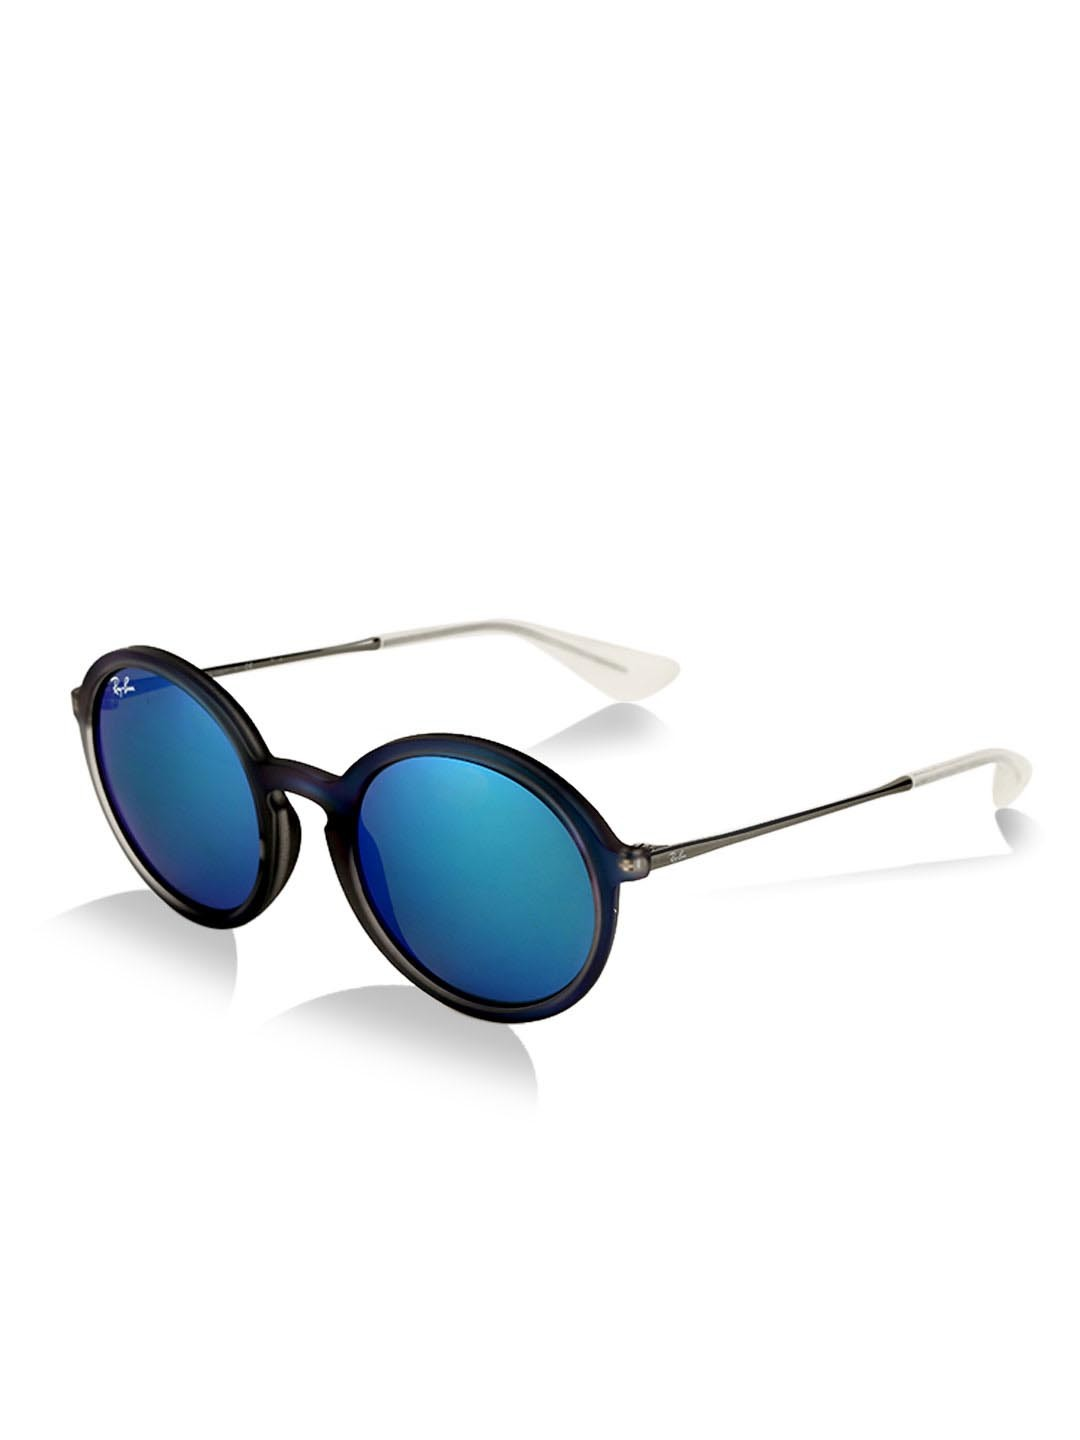 53beb1df22 Buy RAY-BAN Round Sunglasses For Women - Women  39 s Blue Round